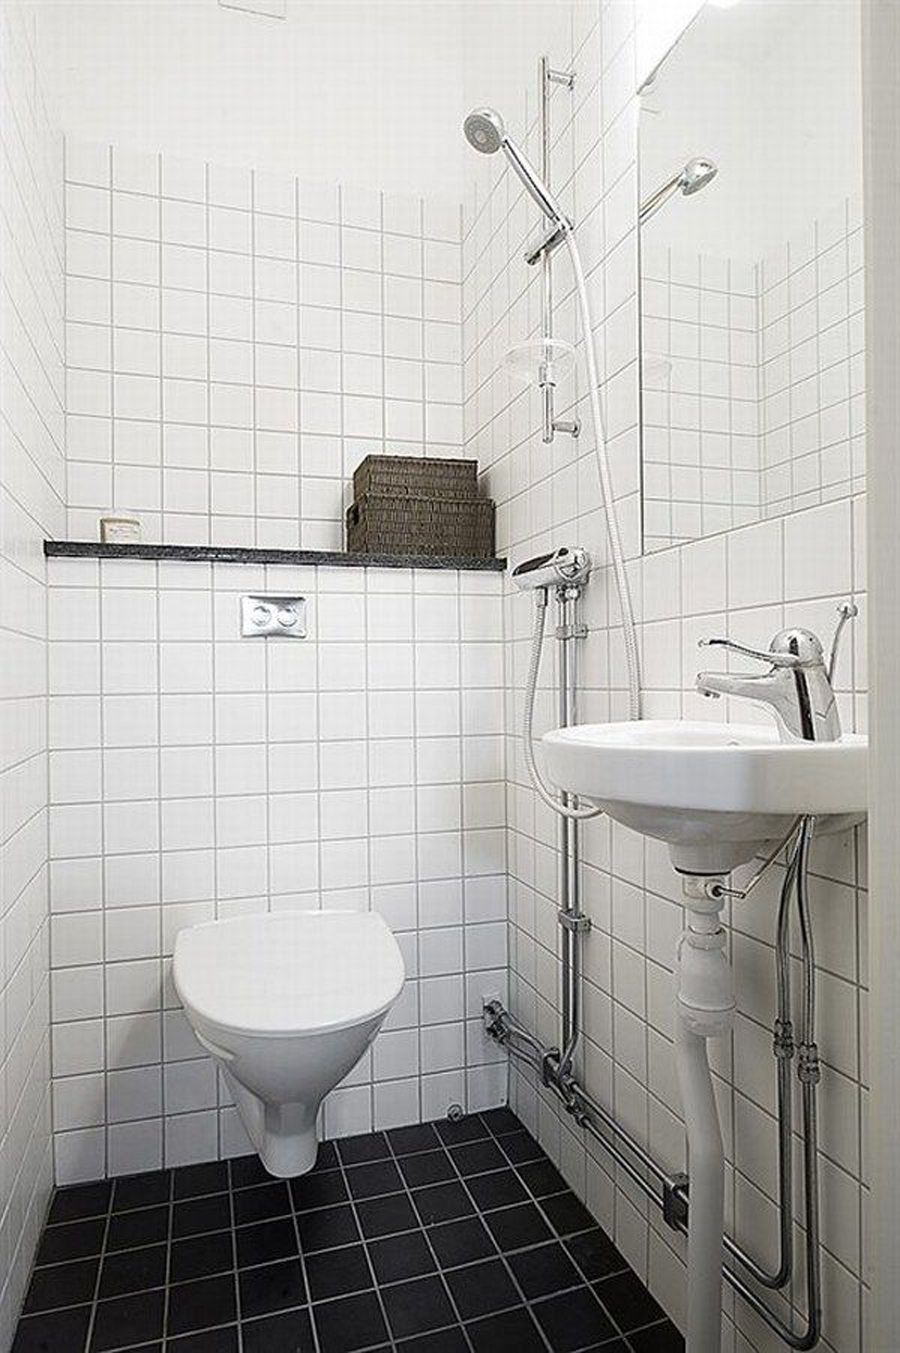 Small Bathroom Ideas With Small White Hanging Toilets Combine With White Checkered Tile Wall And Blac Small Toilet Design Budget Bathroom Remodel Toilet Design